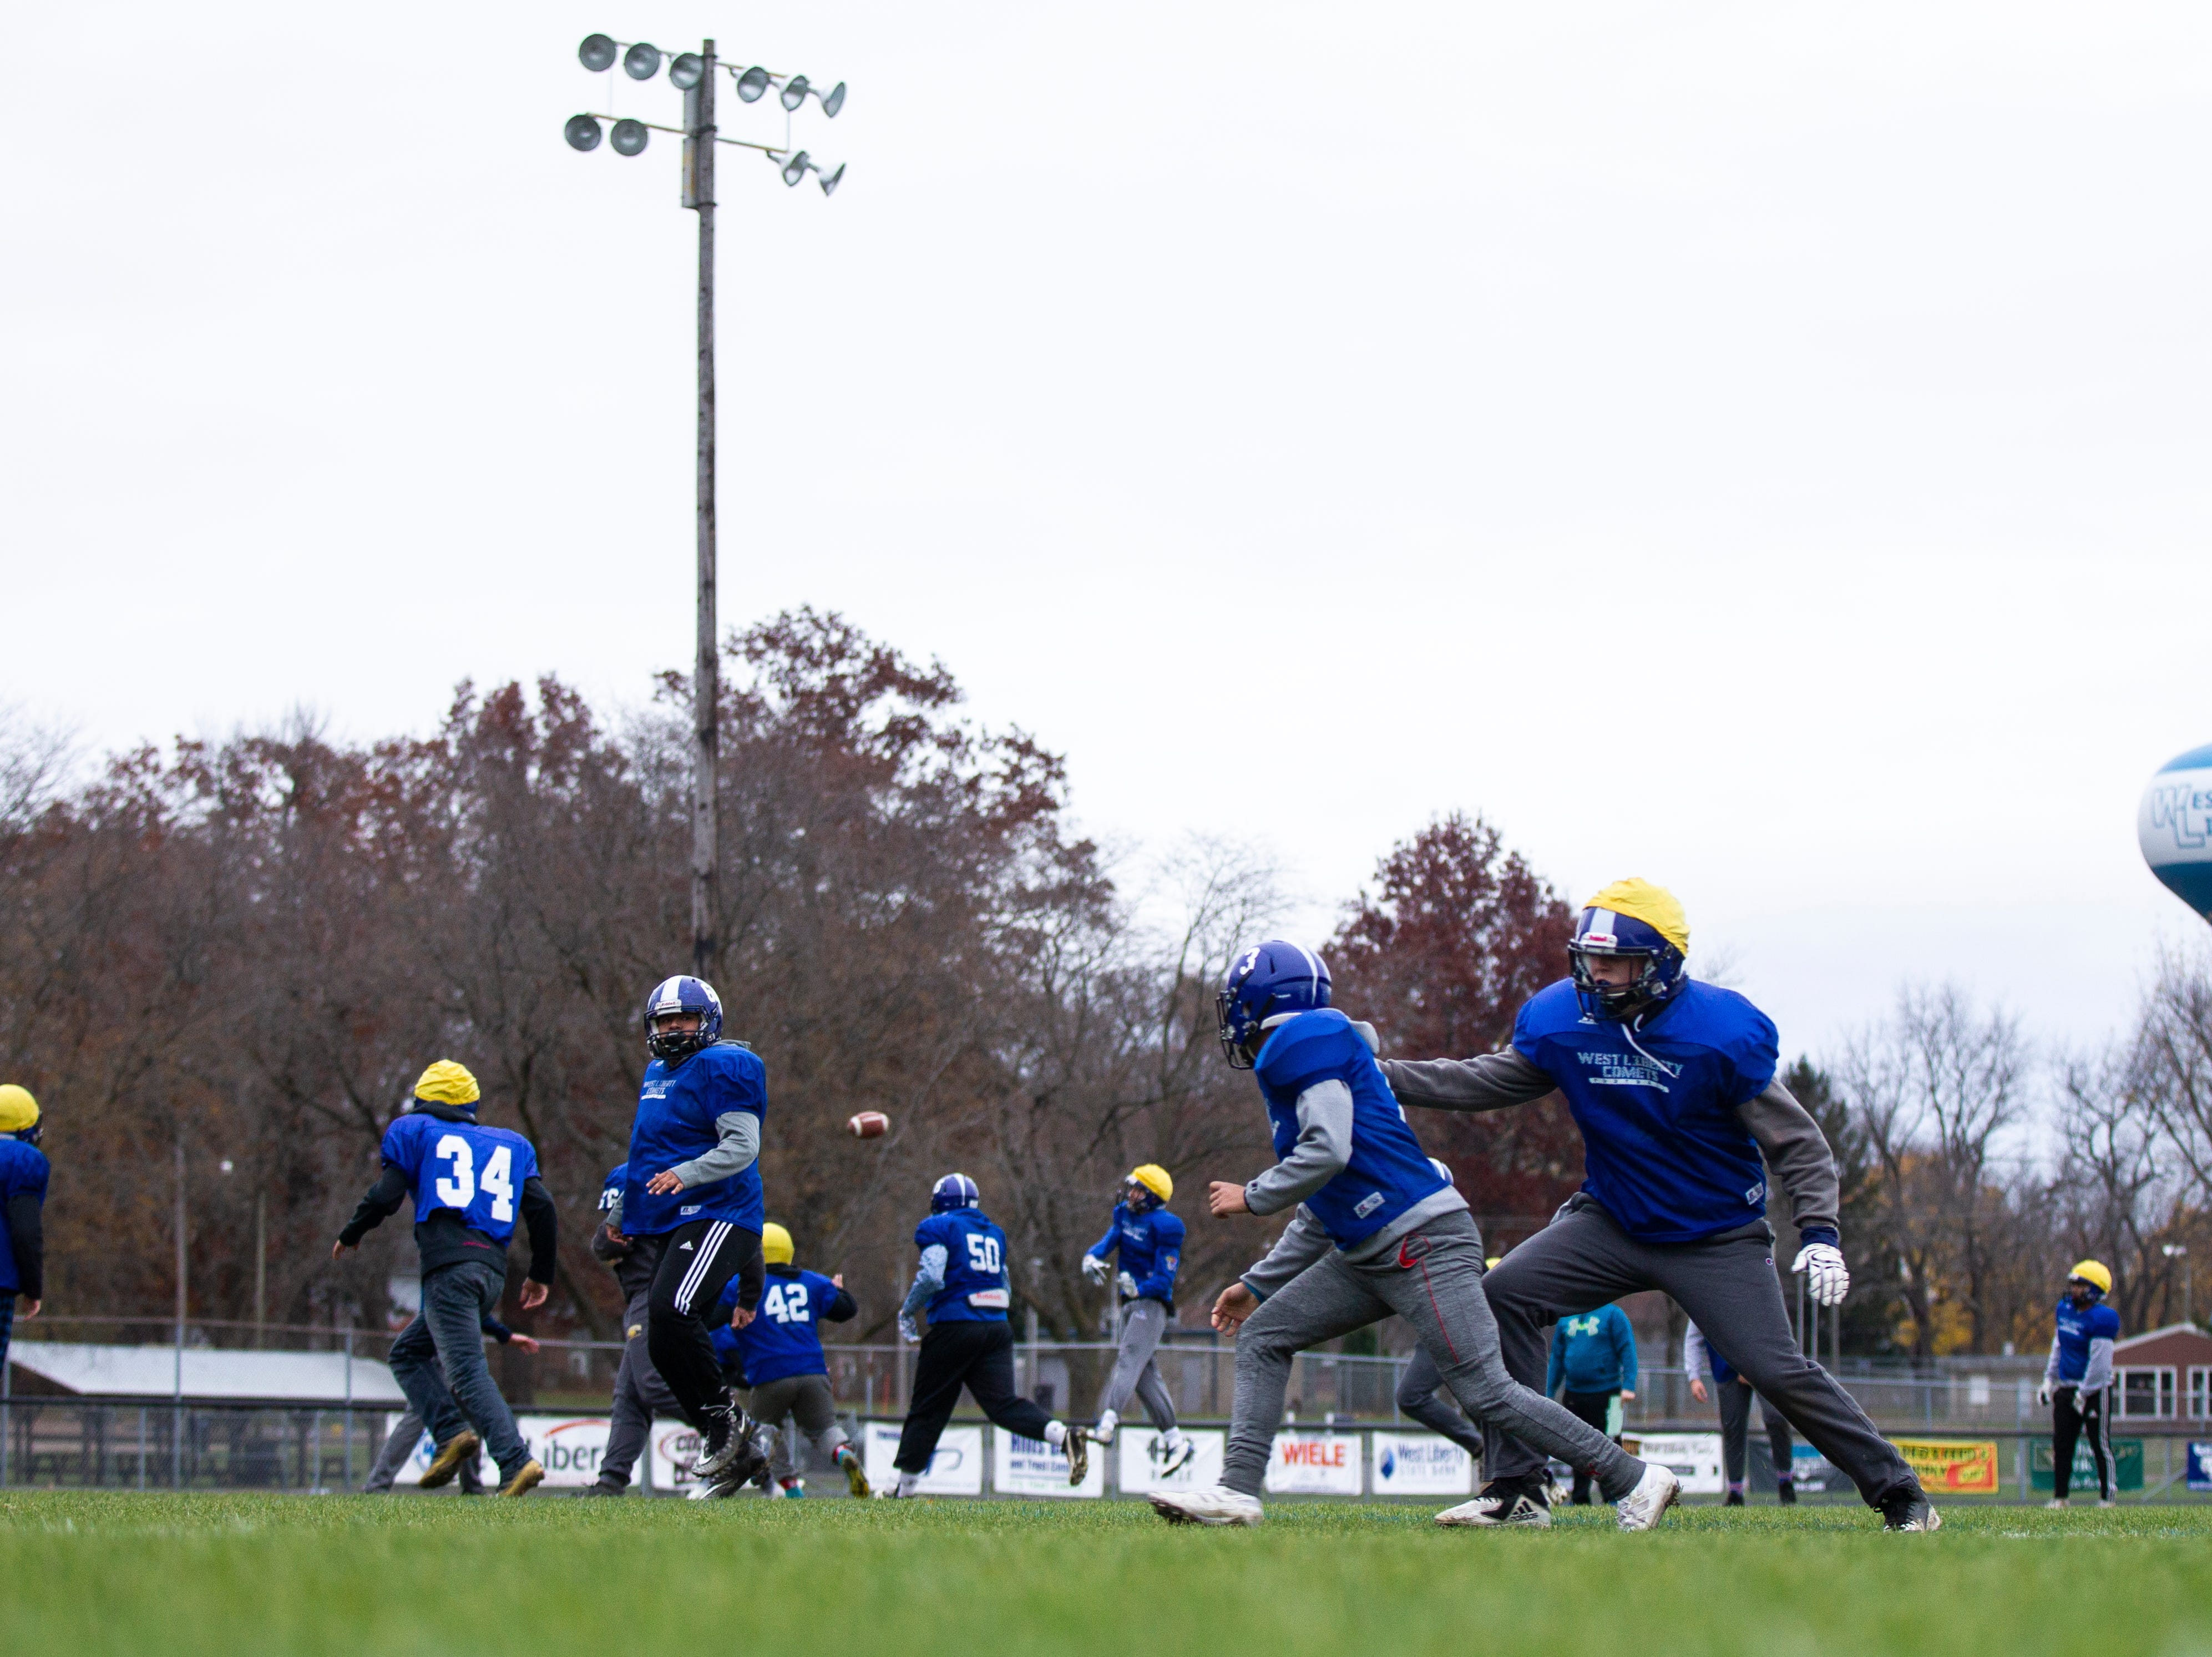 West Liberty players run a drill during football practice on Thursday, Nov. 8, 2018, at Memorial Field in West Liberty.